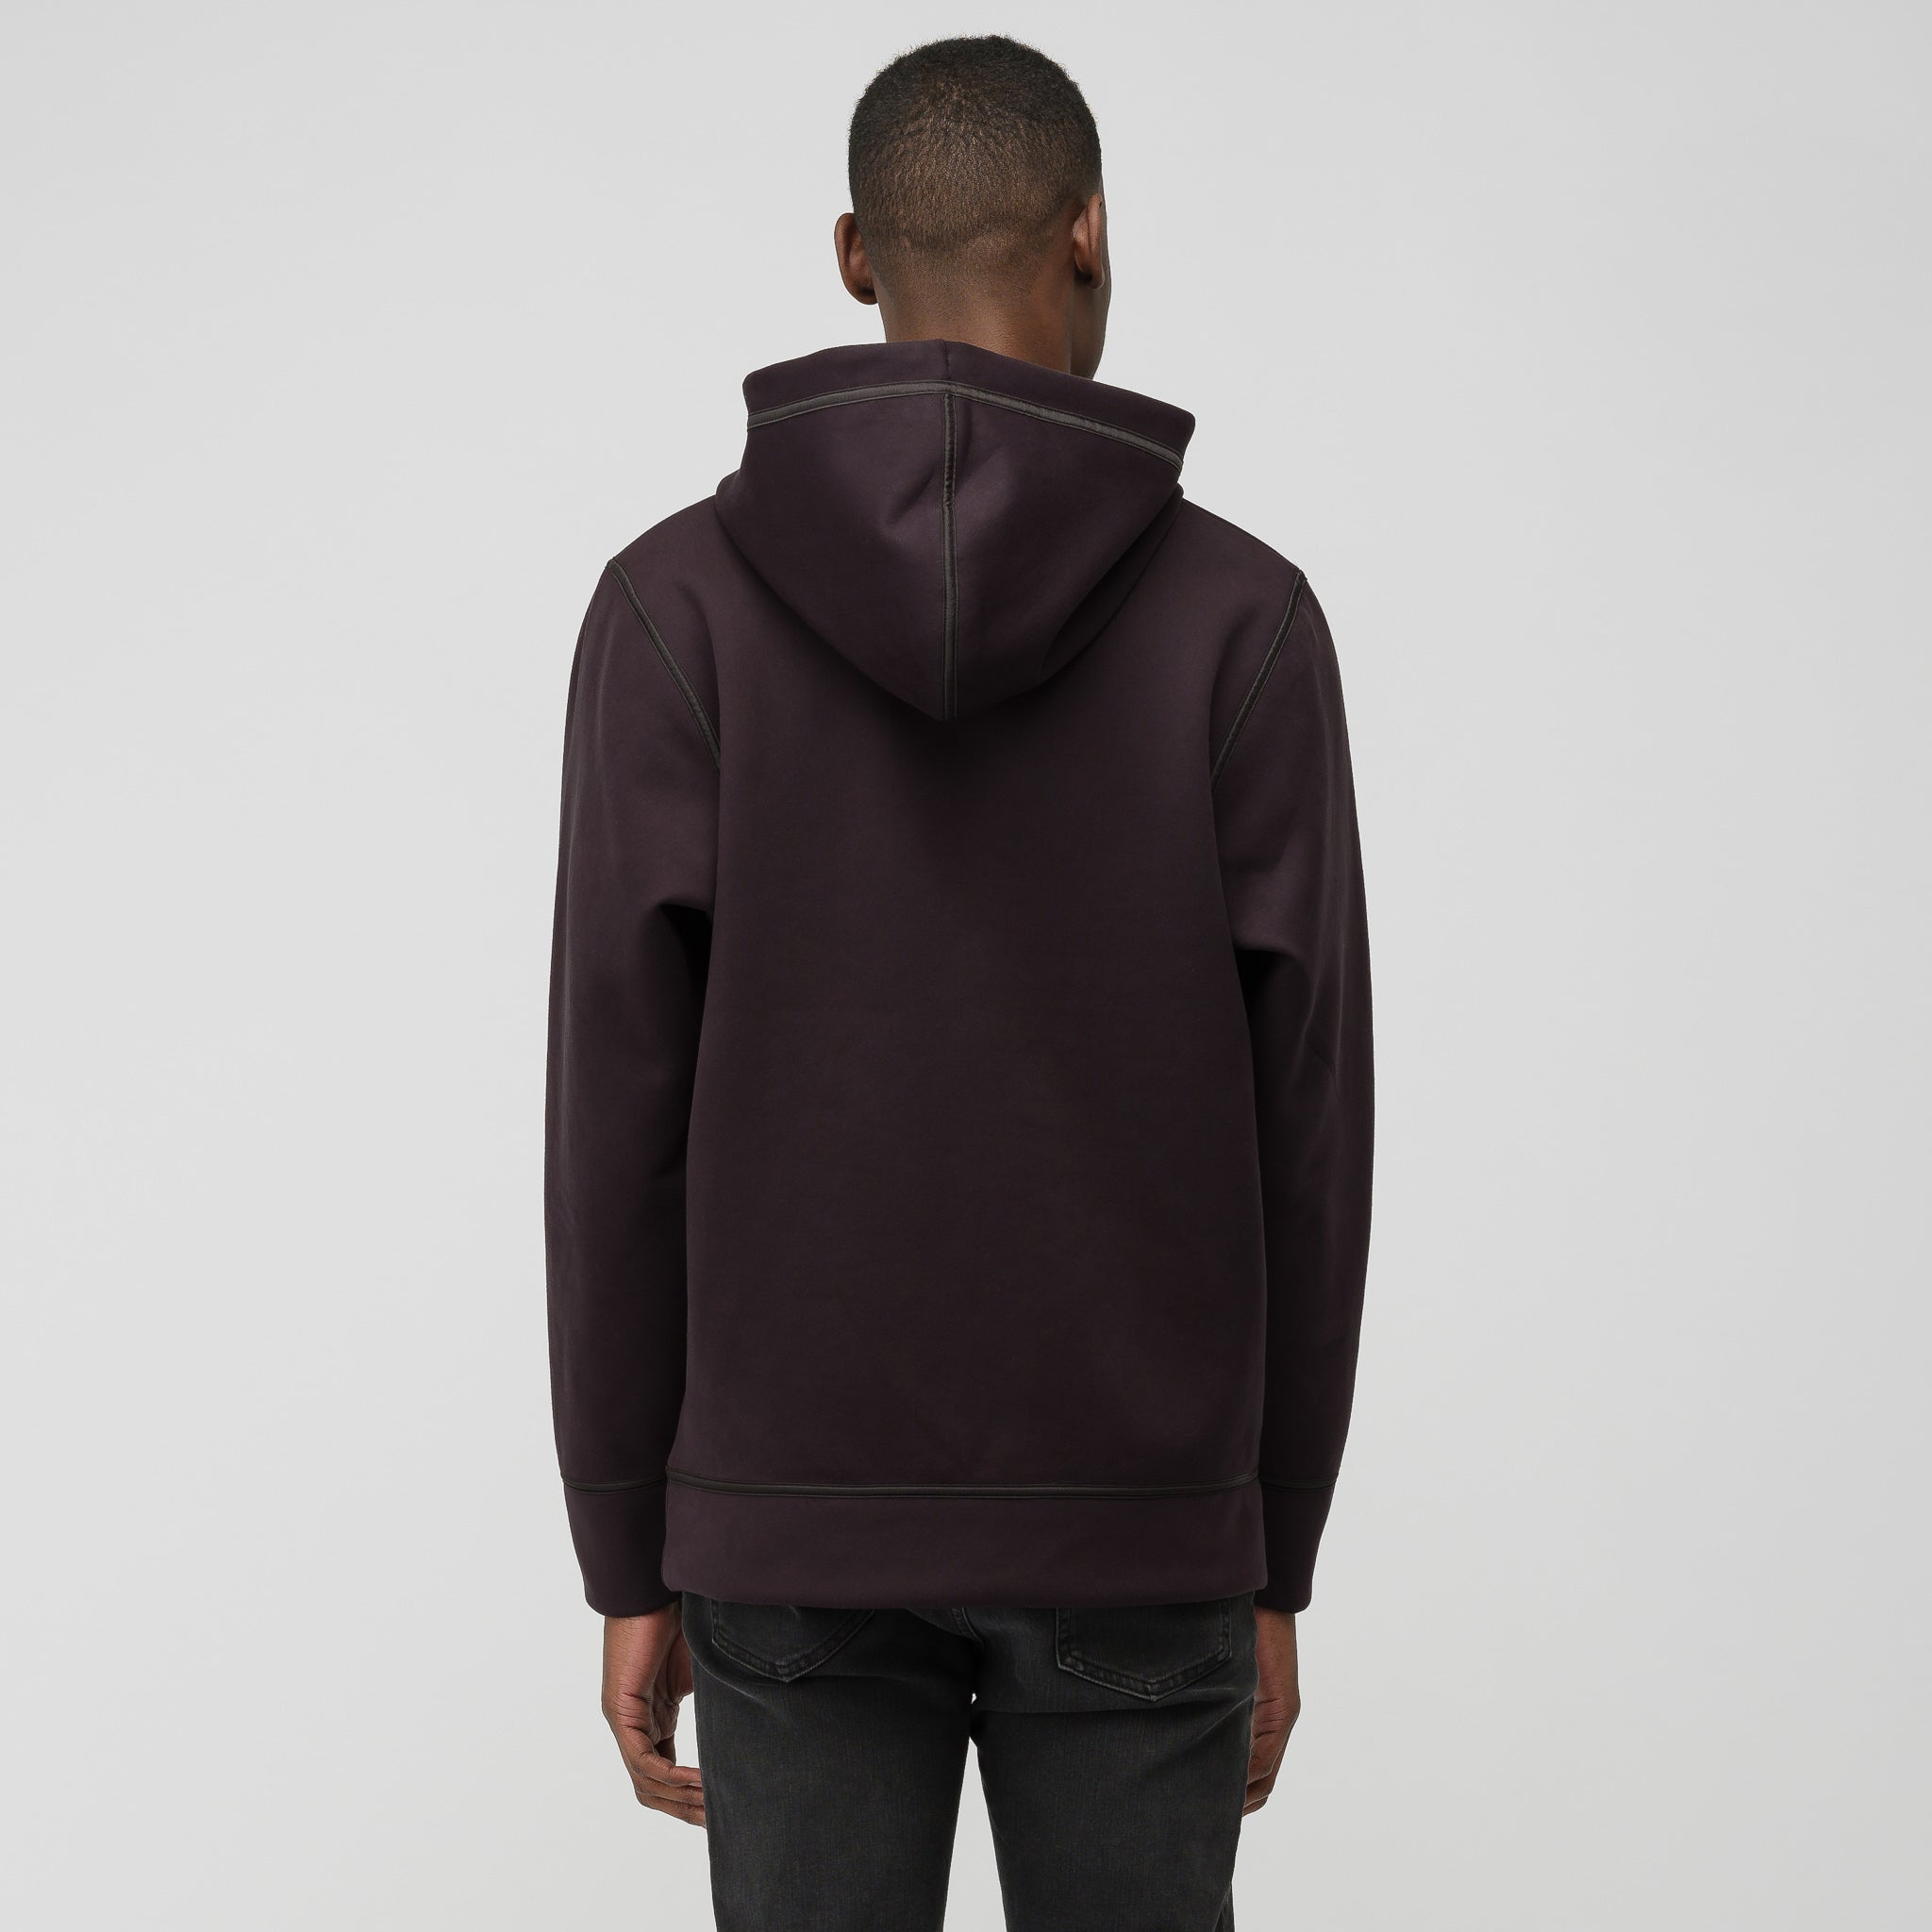 Remastered Hoodie in Black